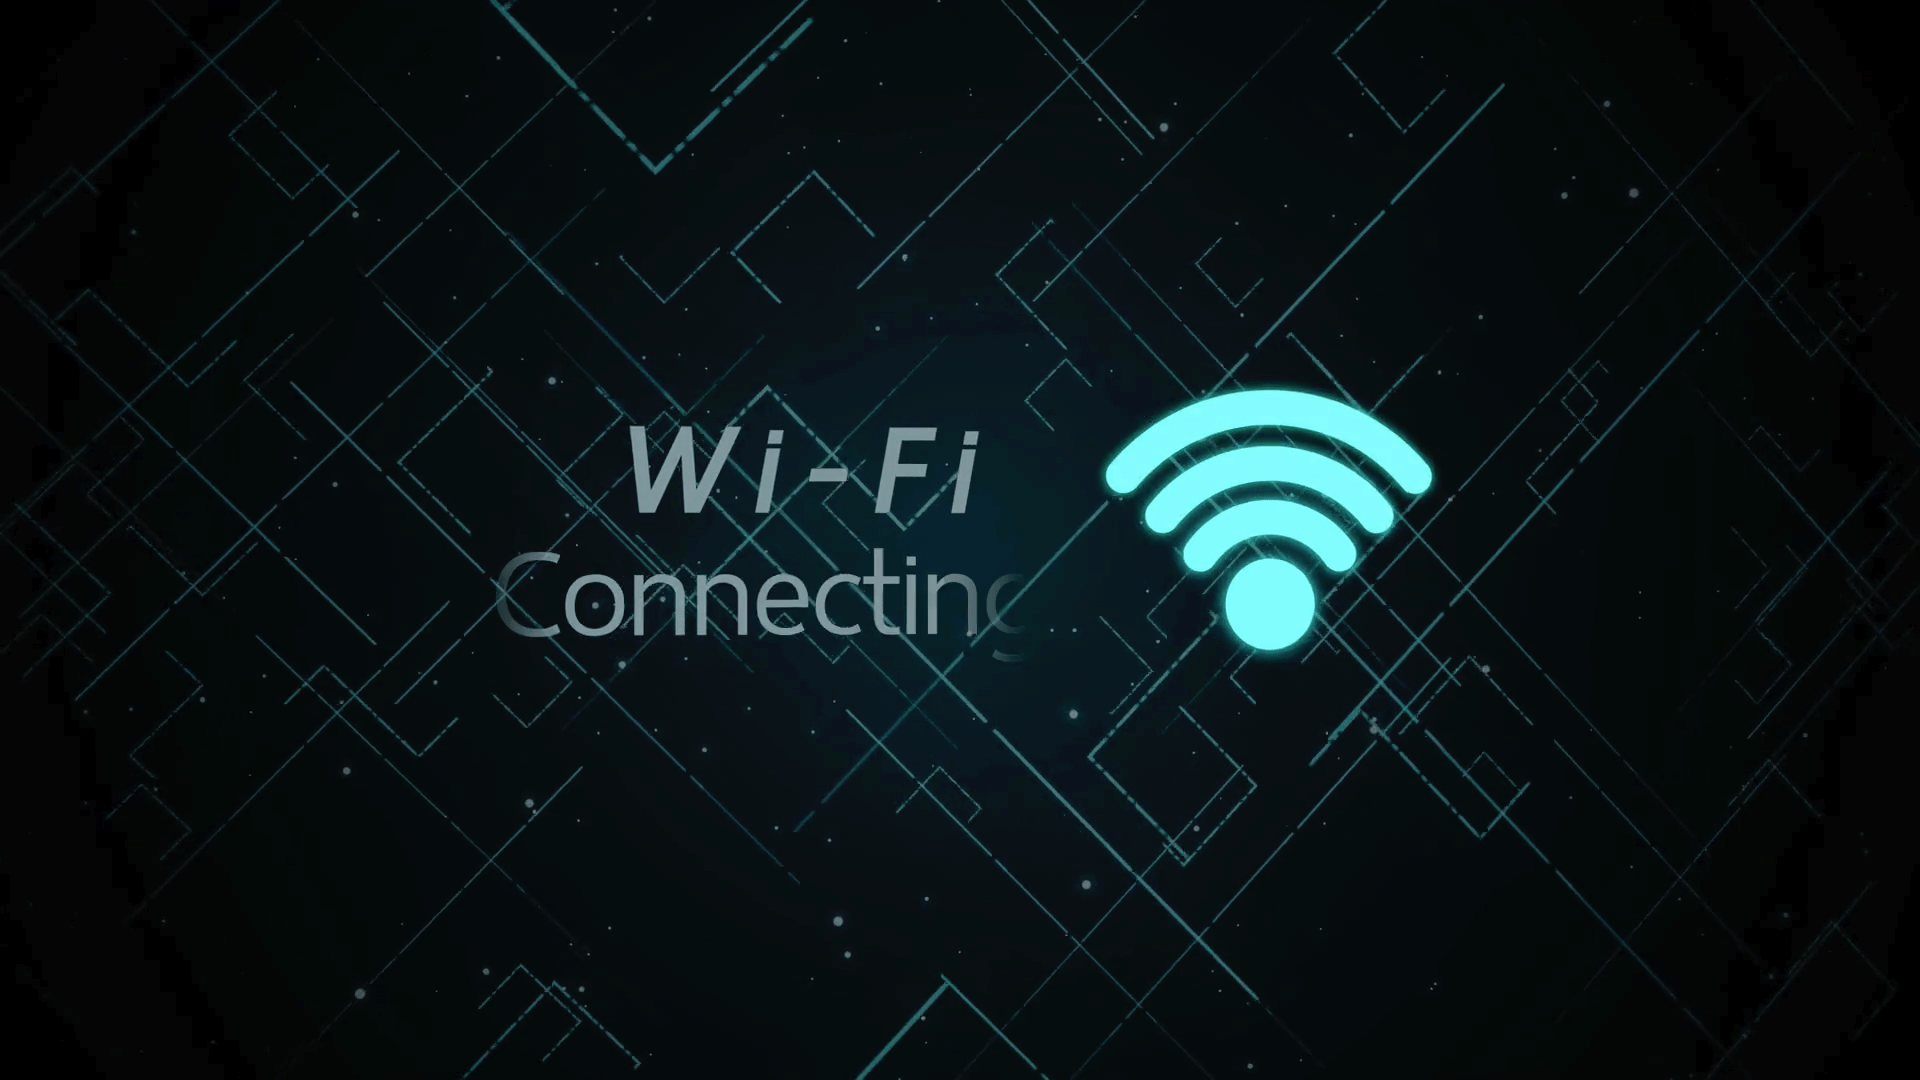 Wi-Fi Connecting